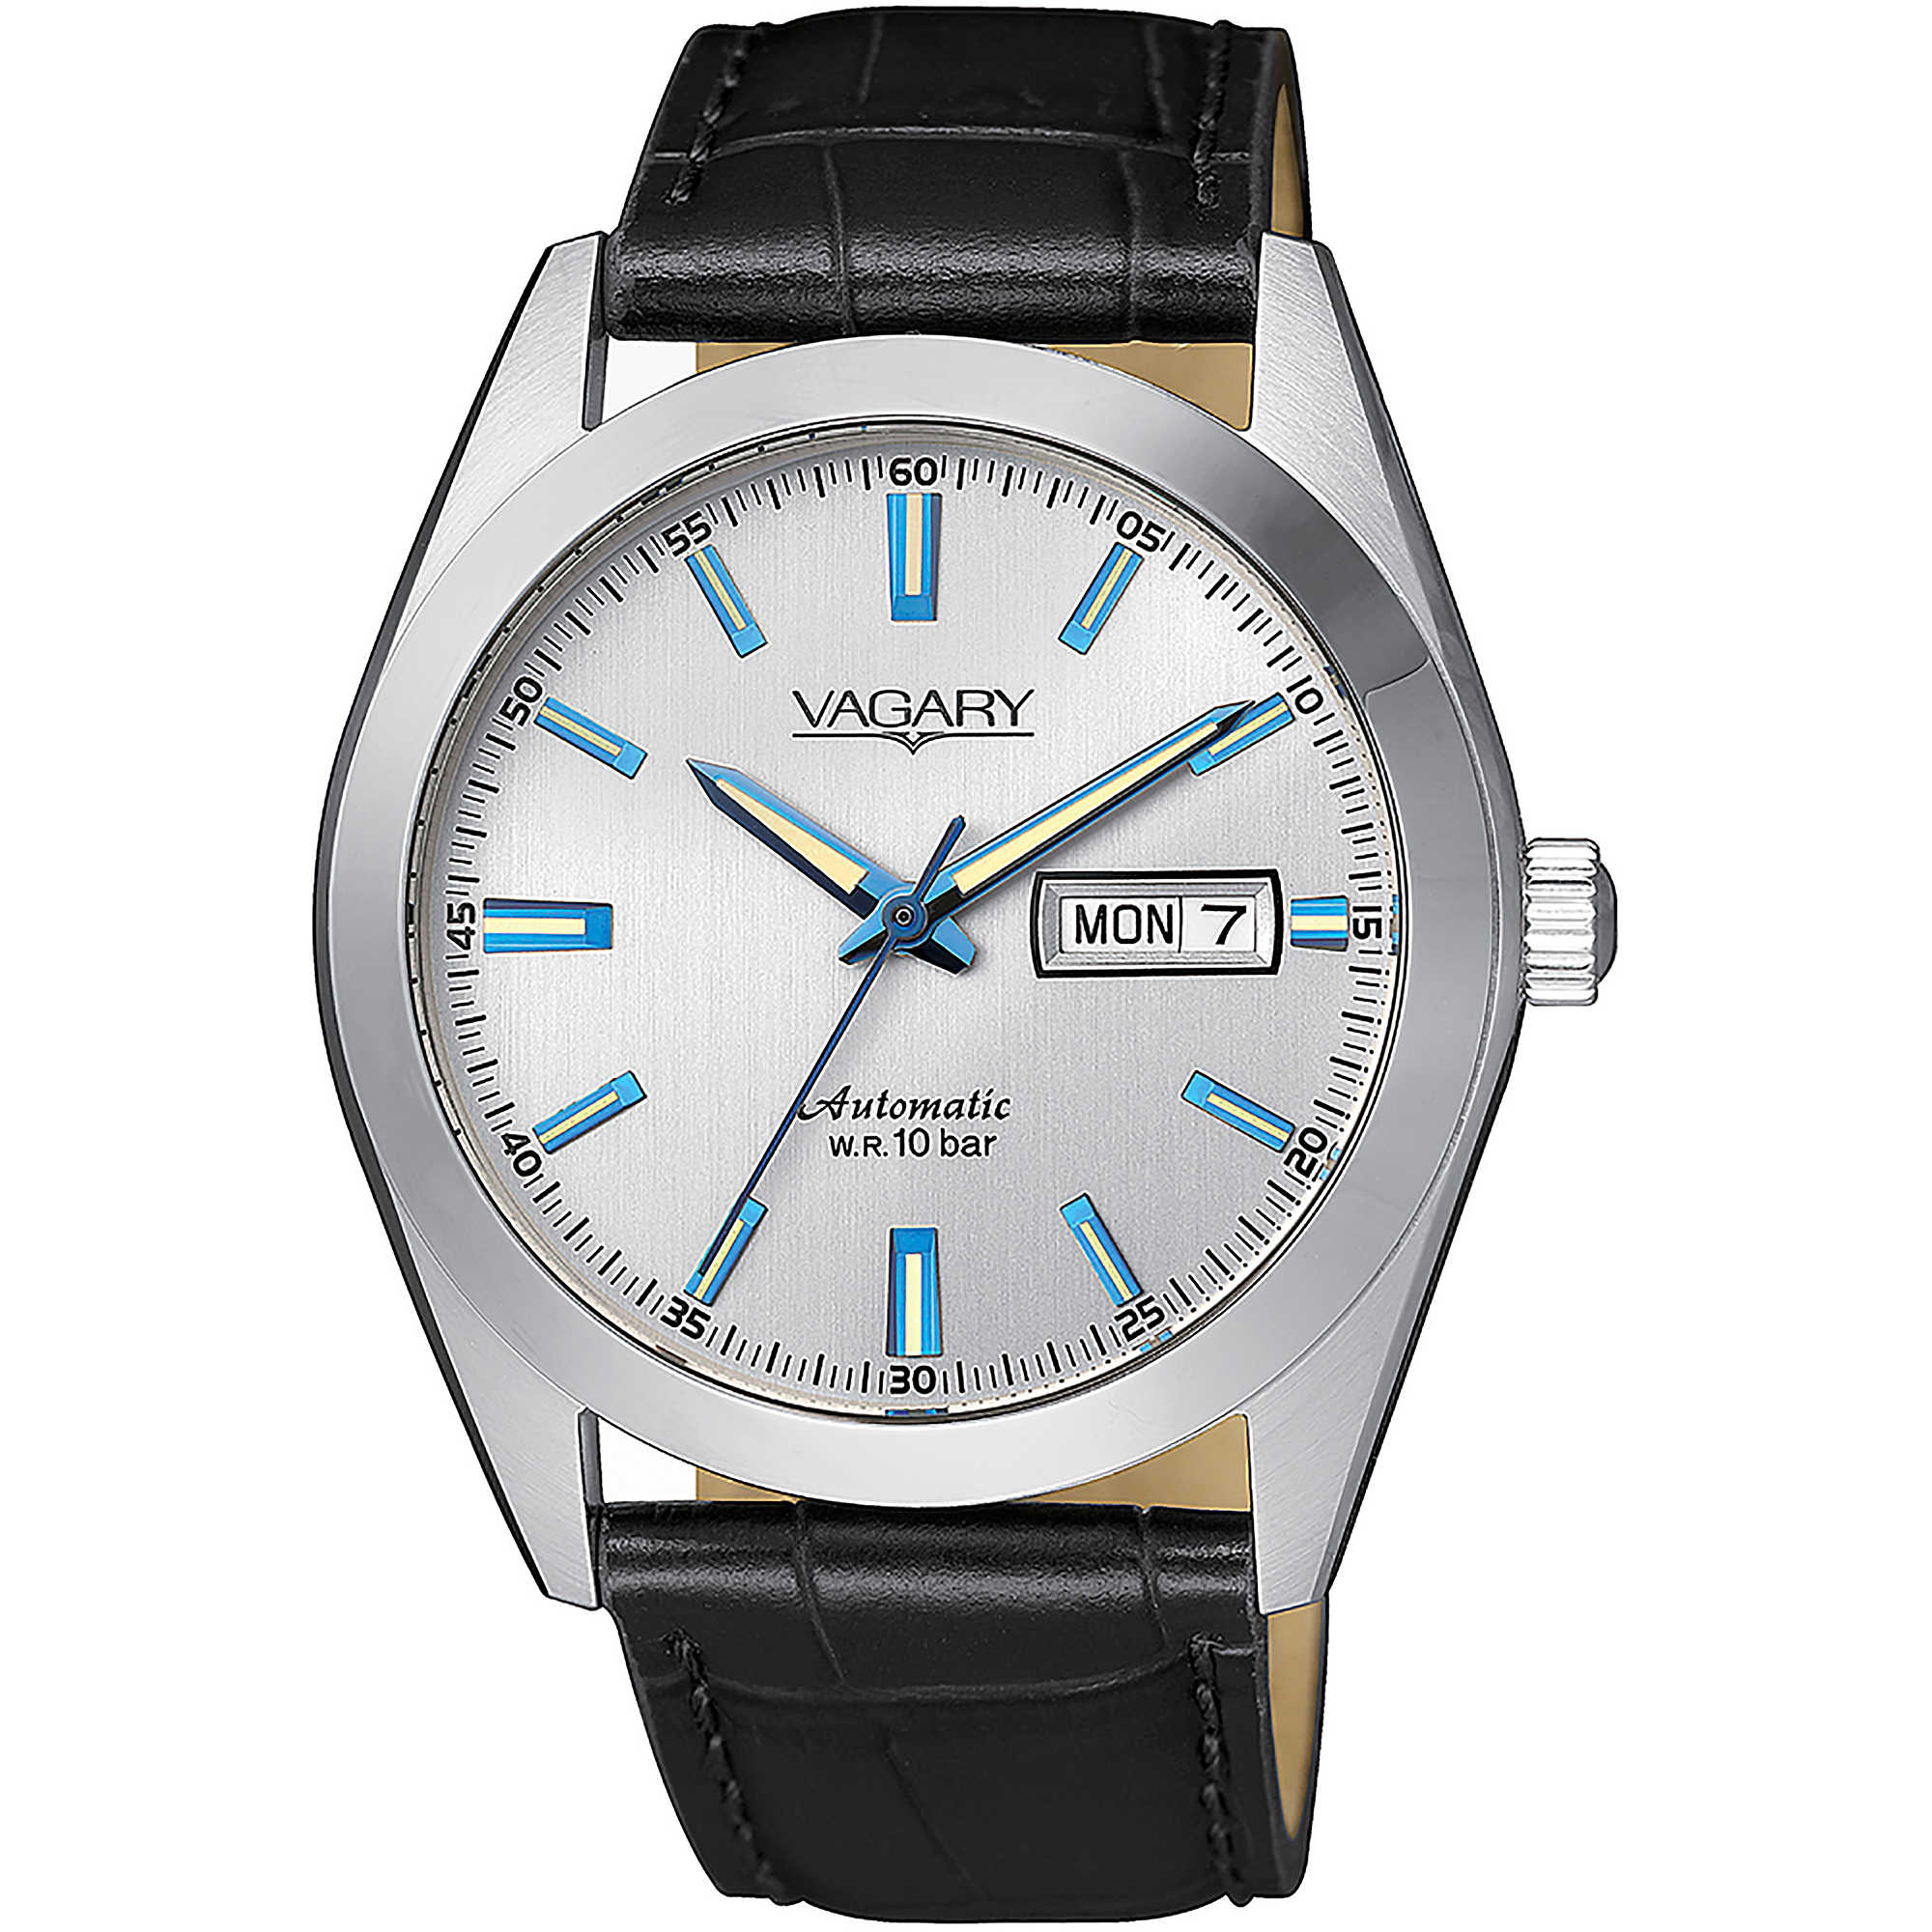 VAGARY BY CITIZEN GEAR MATIC OROLOGIO UOMO IX3-211-10